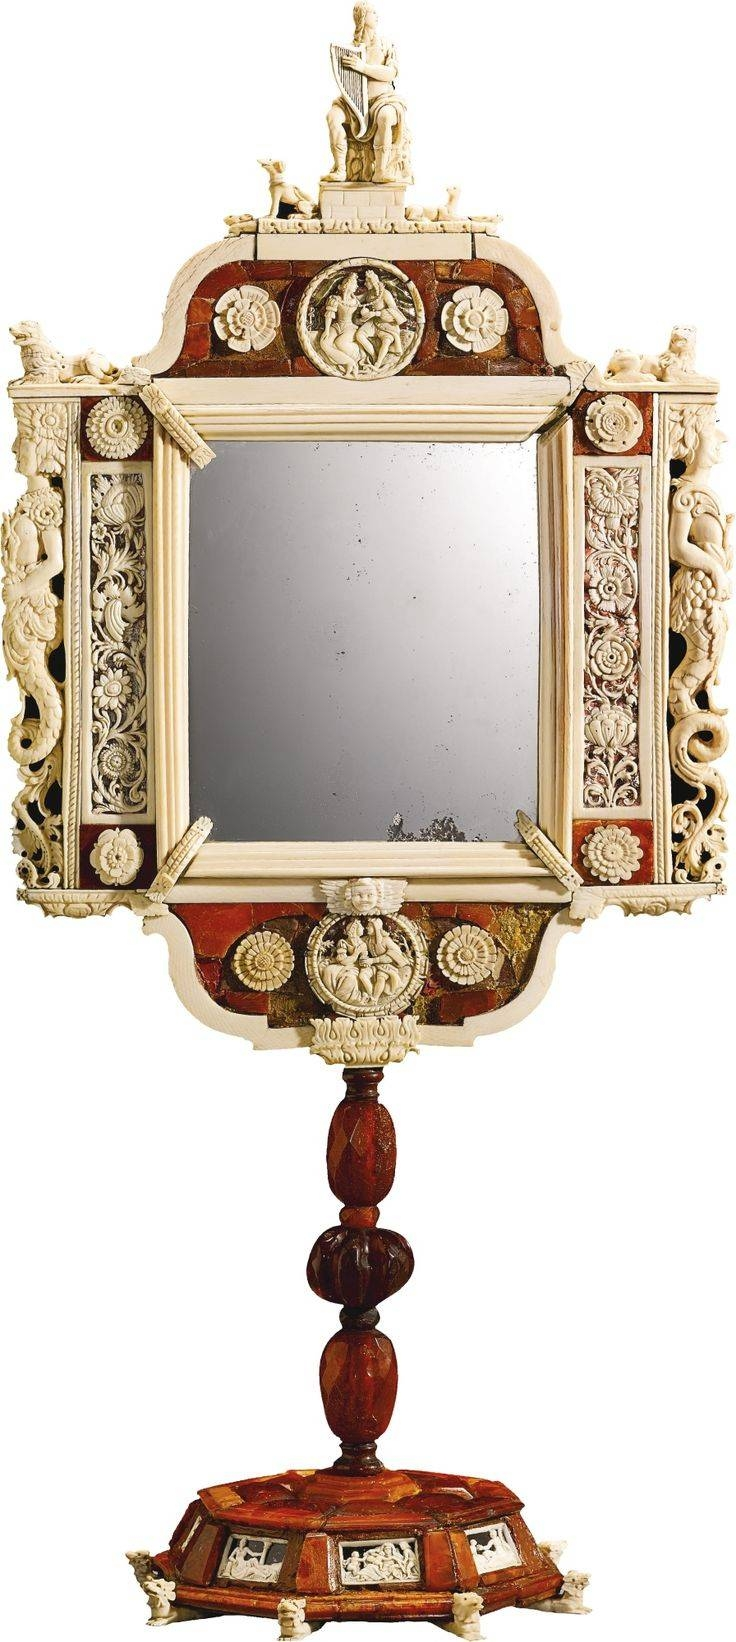 703 Best Antique Mirrors, Frame Images On Pinterest | Antique In Red Mirrors (Photo 12 of 25)